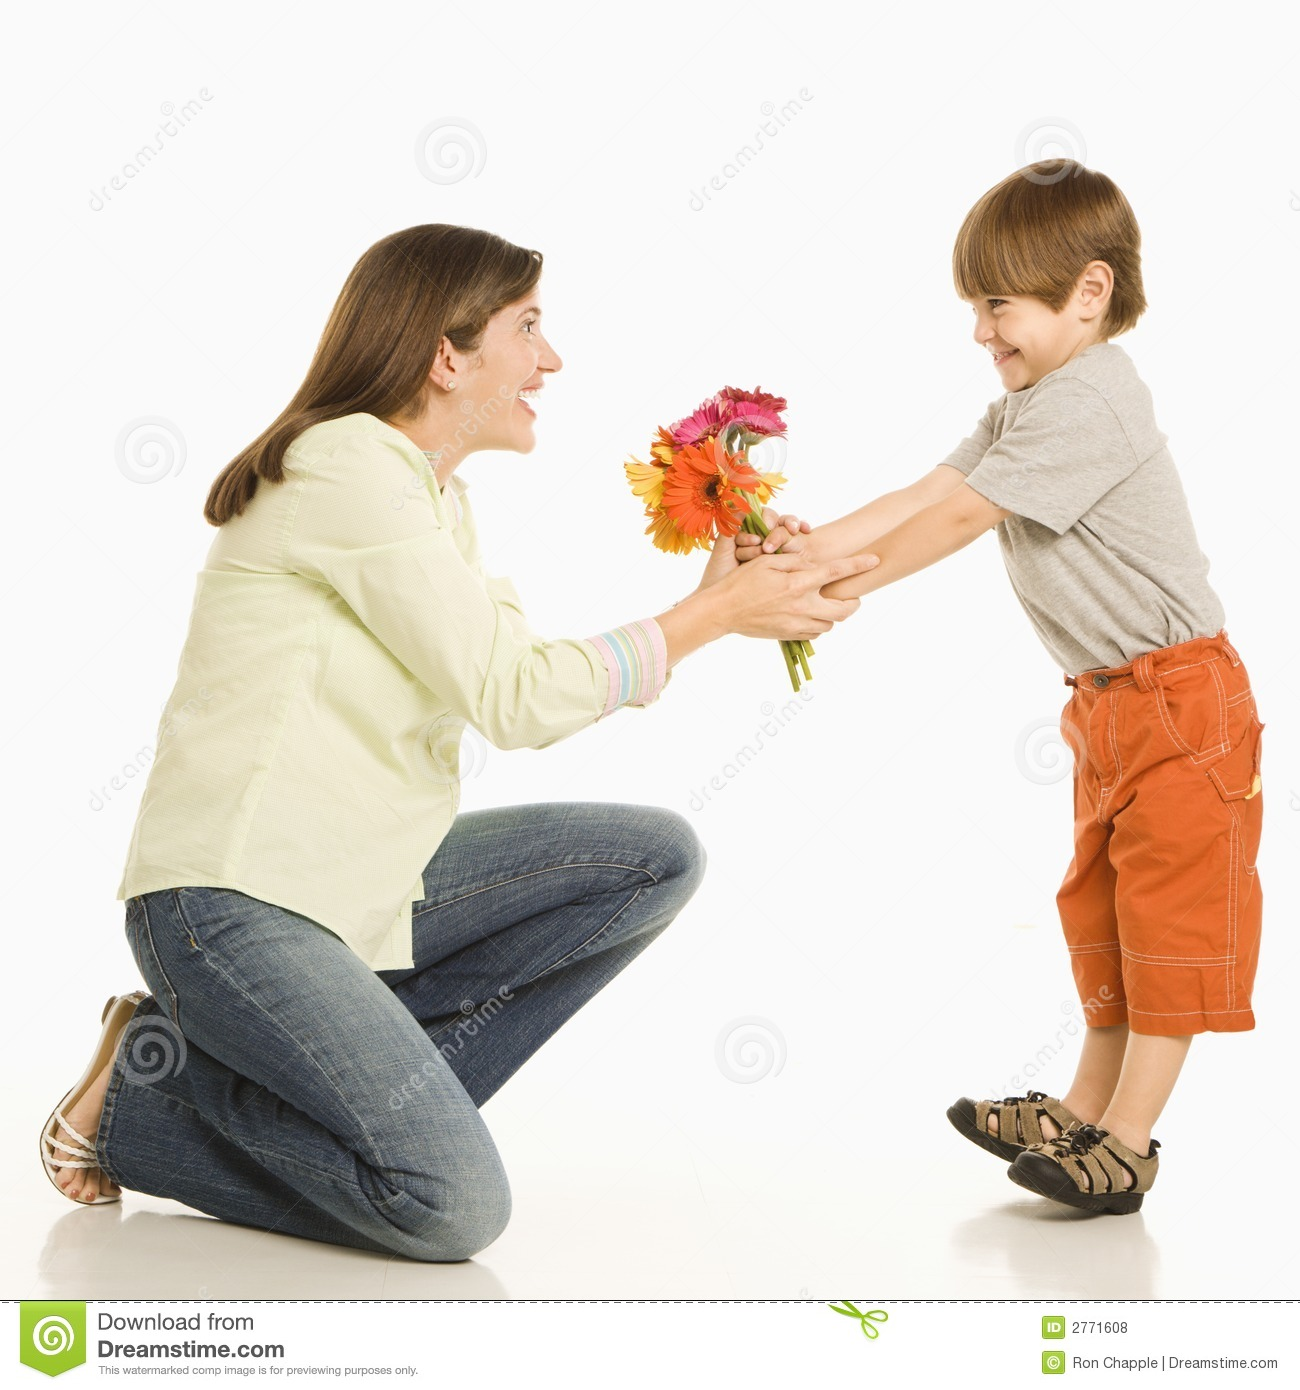 Son giving mother flowers.